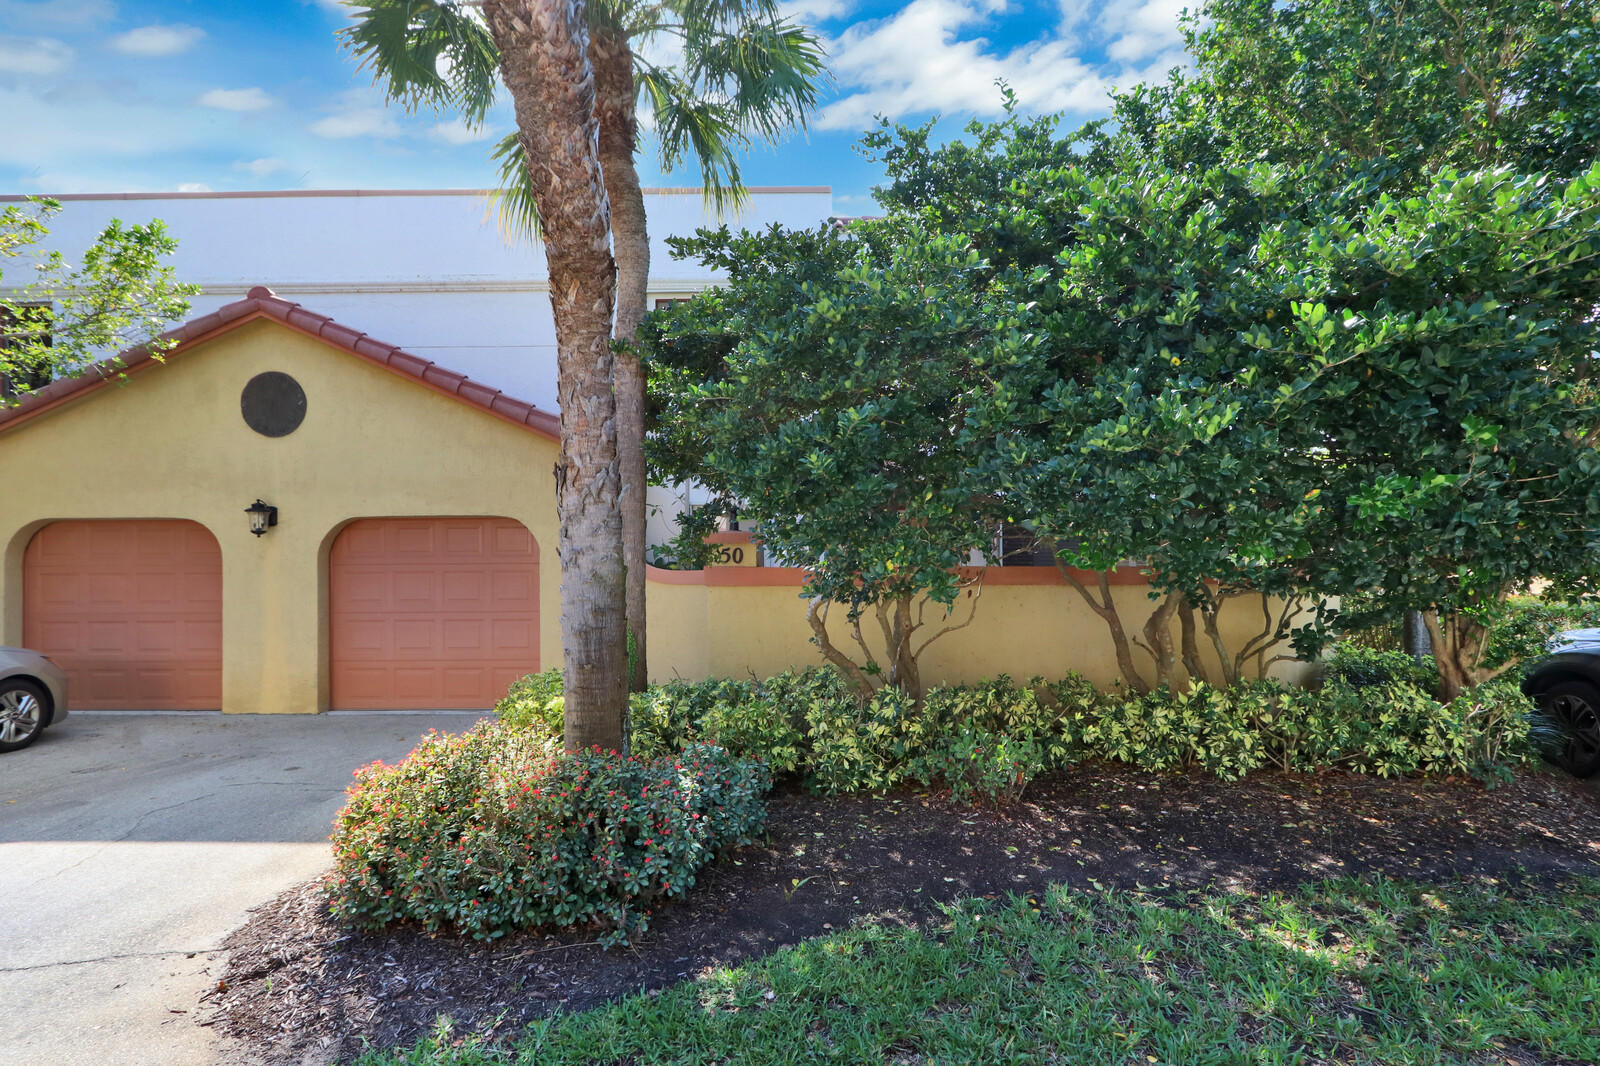 THIS 2-STORY LOVELY JUNO BEACH TOWNHOME IS PERFECTLY LOCATED CLOSE TO BEACHES, RESTAURANTS & SHOPPING.  WHITE KITCHEN WITH GRANITE & PANTRY.  SPACIOUS LIVING AREA, TILE, HUGE MASTER BEDROOM WITH WALK-IN CLOSET, PRIVATE PATIO, 1-CAR GARAGE, WONDERFUL GATED COMMUNITY WITH POOL, CLUBHOUSE, EXERCISE ROOM, HOT TUB.